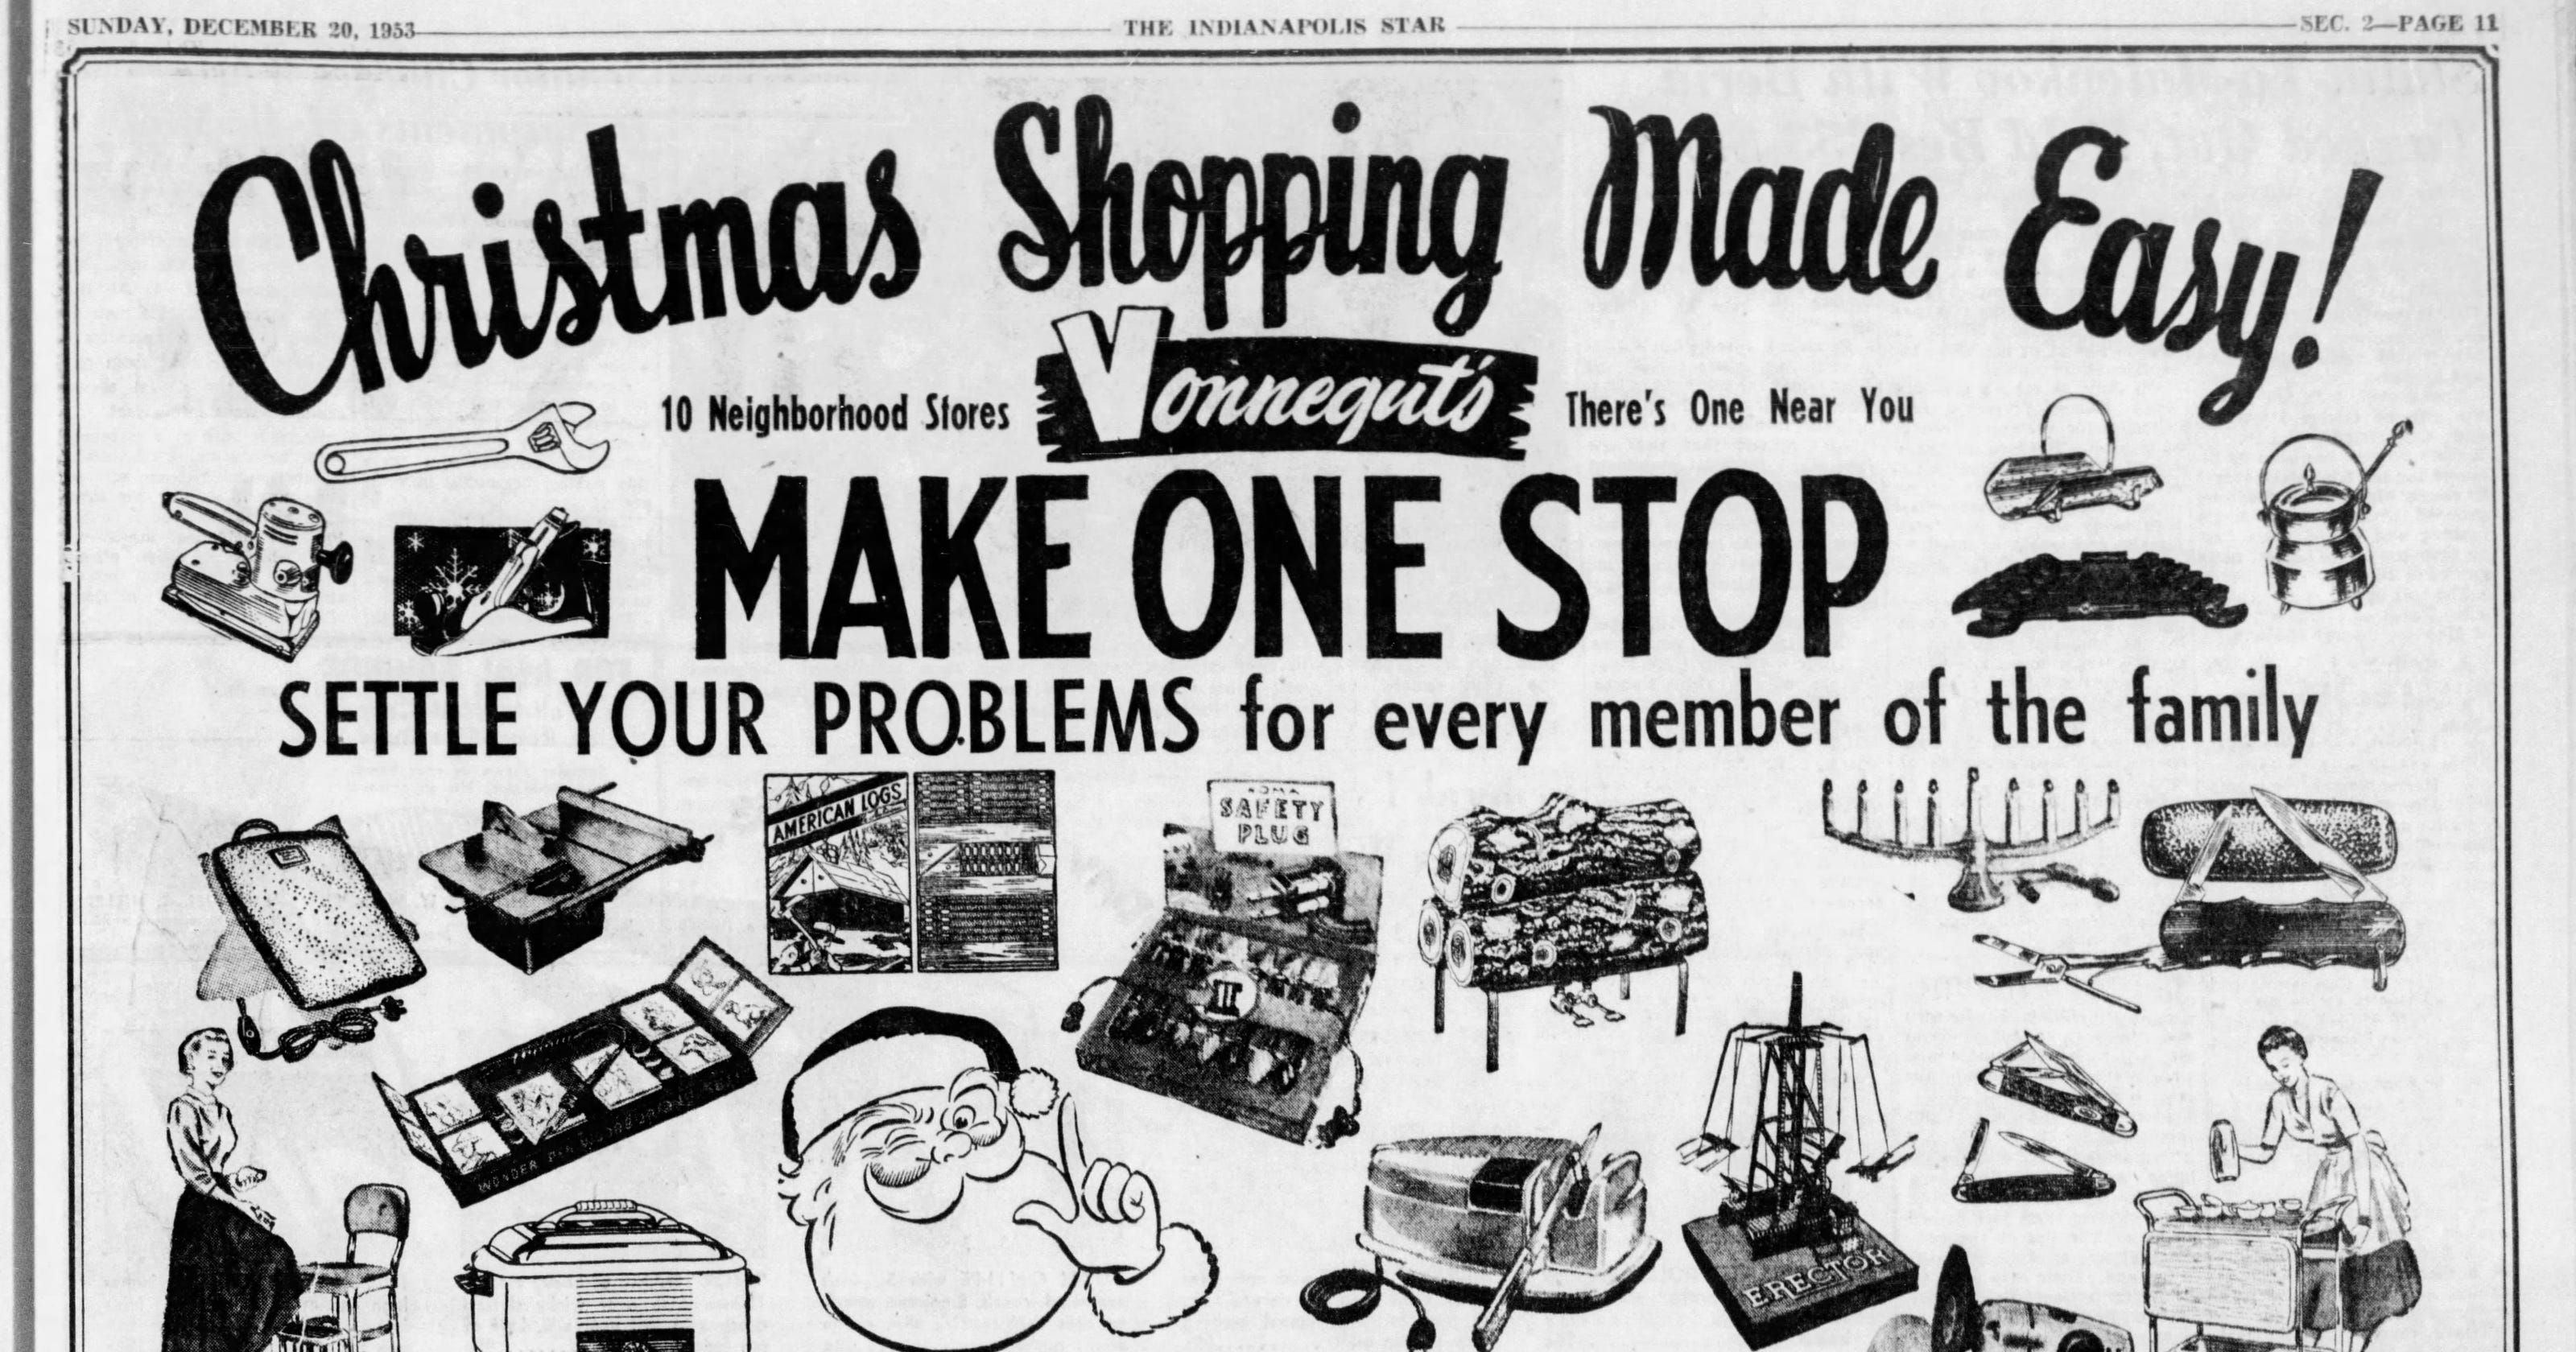 25 best vintage holiday ads that show what Indy wanted for Christmas